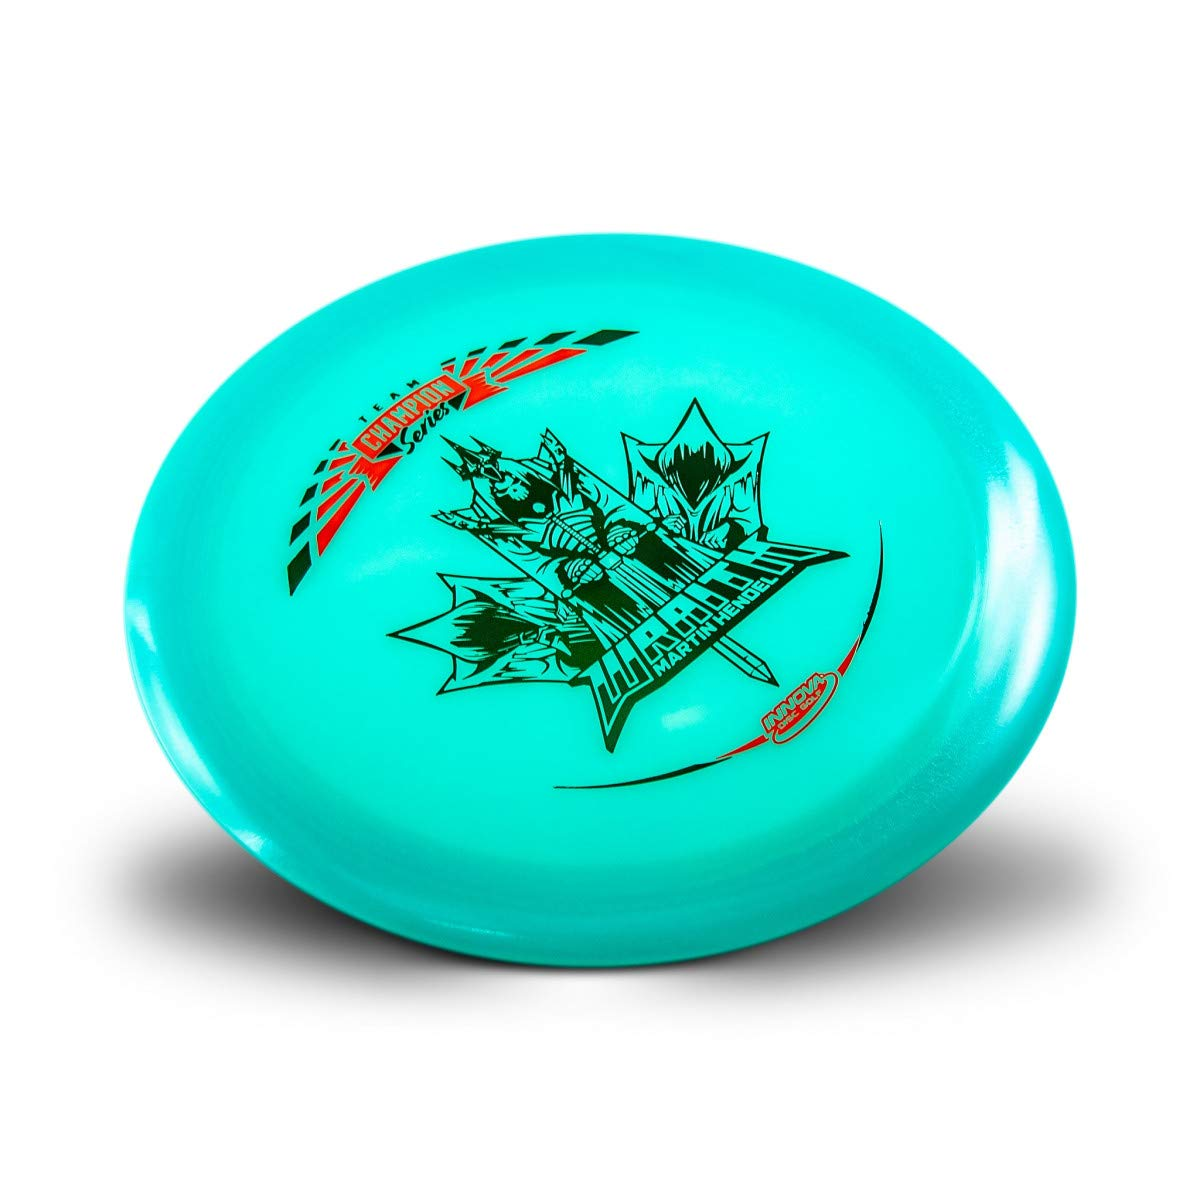 Innova Limited Edition 2019 Tour Series Martin Hendel Color Glow Champion Wraith Distance Driver Golf Disc [Colors May Vary] - 173-175g by Innova Disc Golf